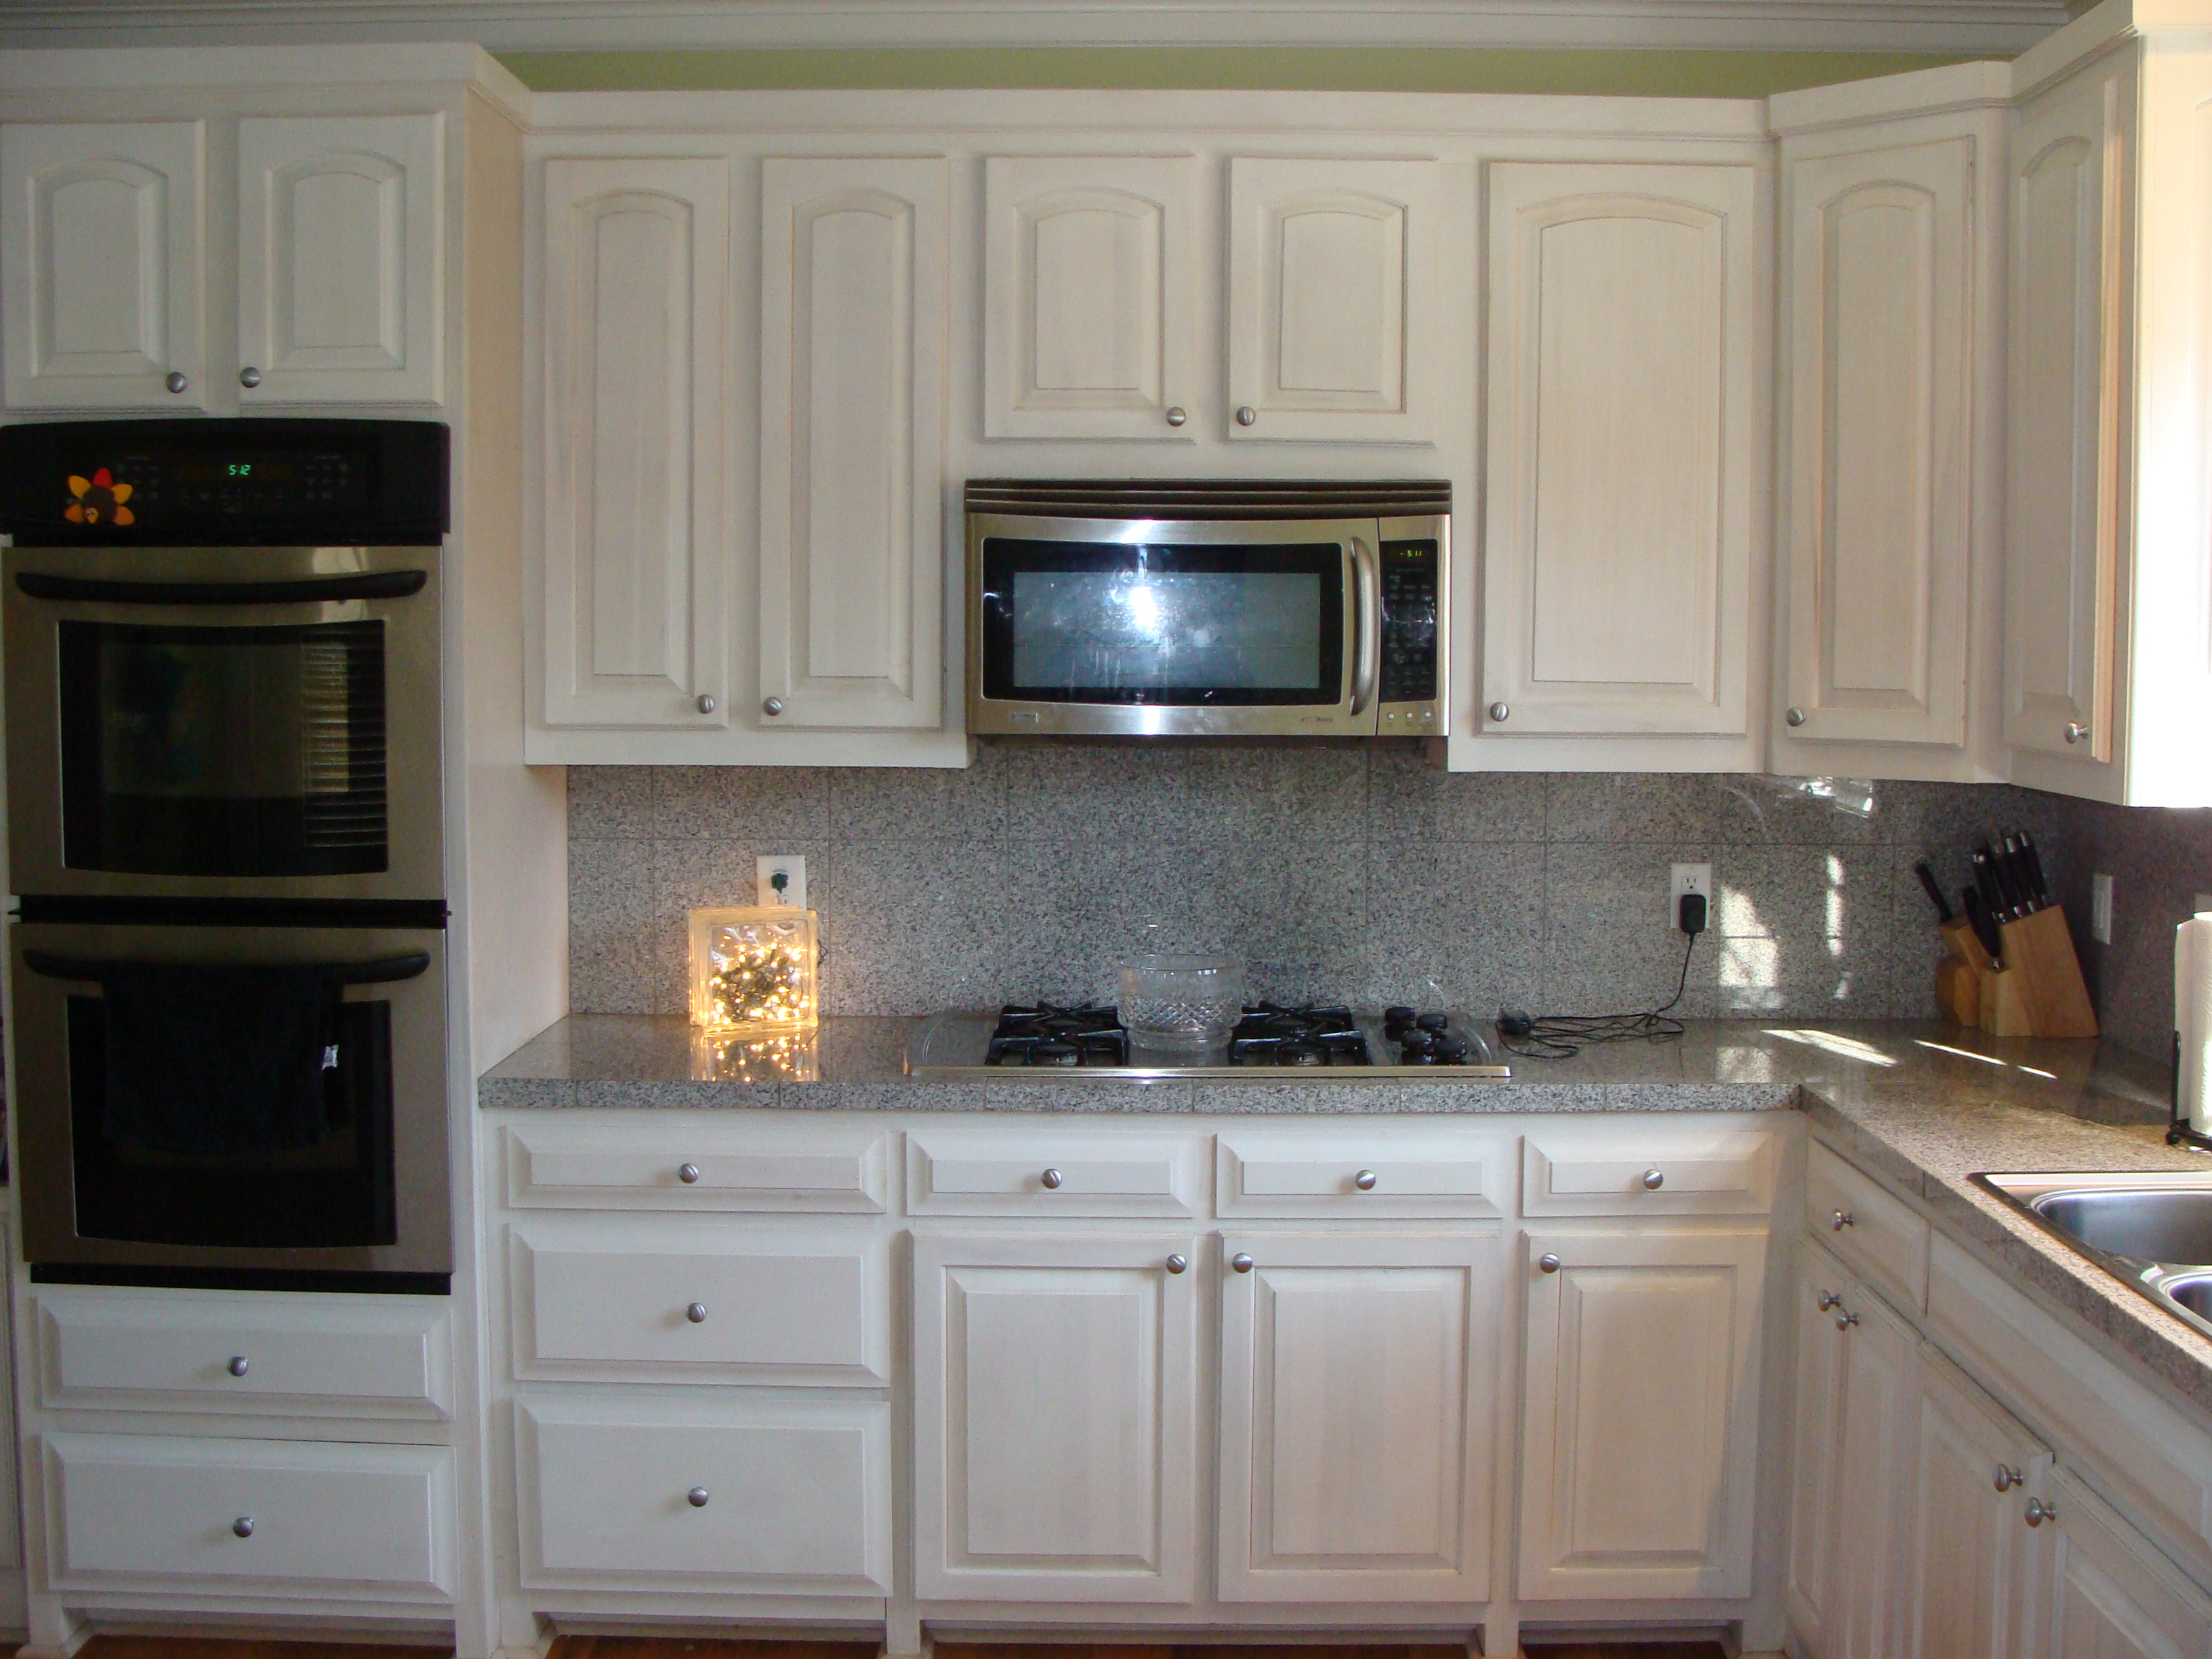 Shelves for kitchen cabinets Photo - 5